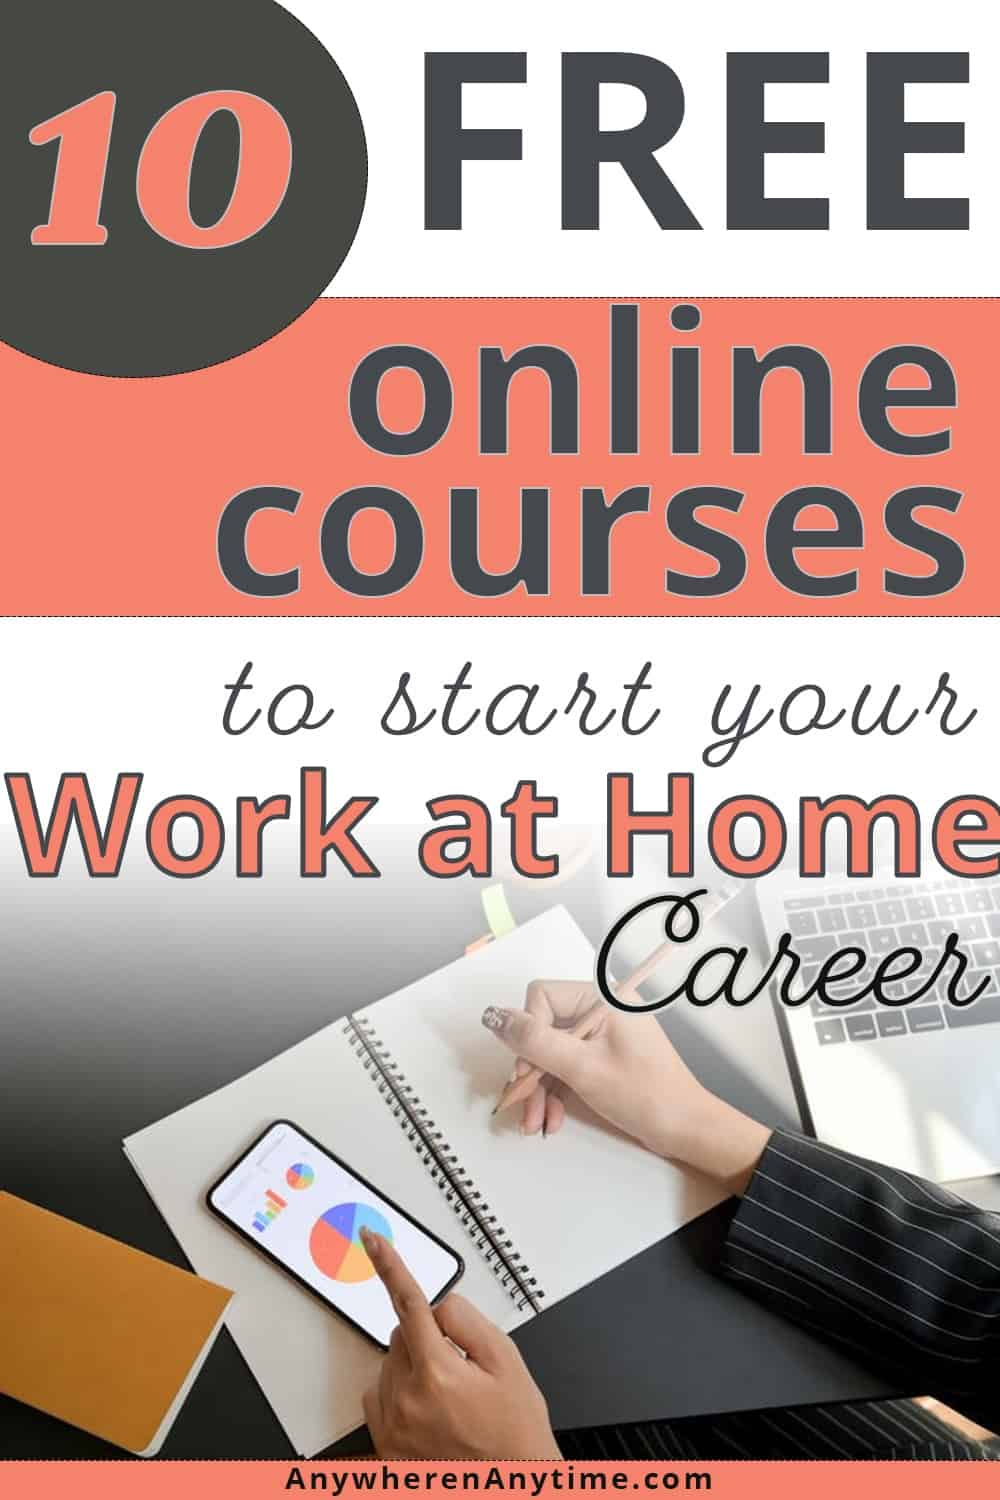 Free Online Courses to Start Your Work-at-Home Career